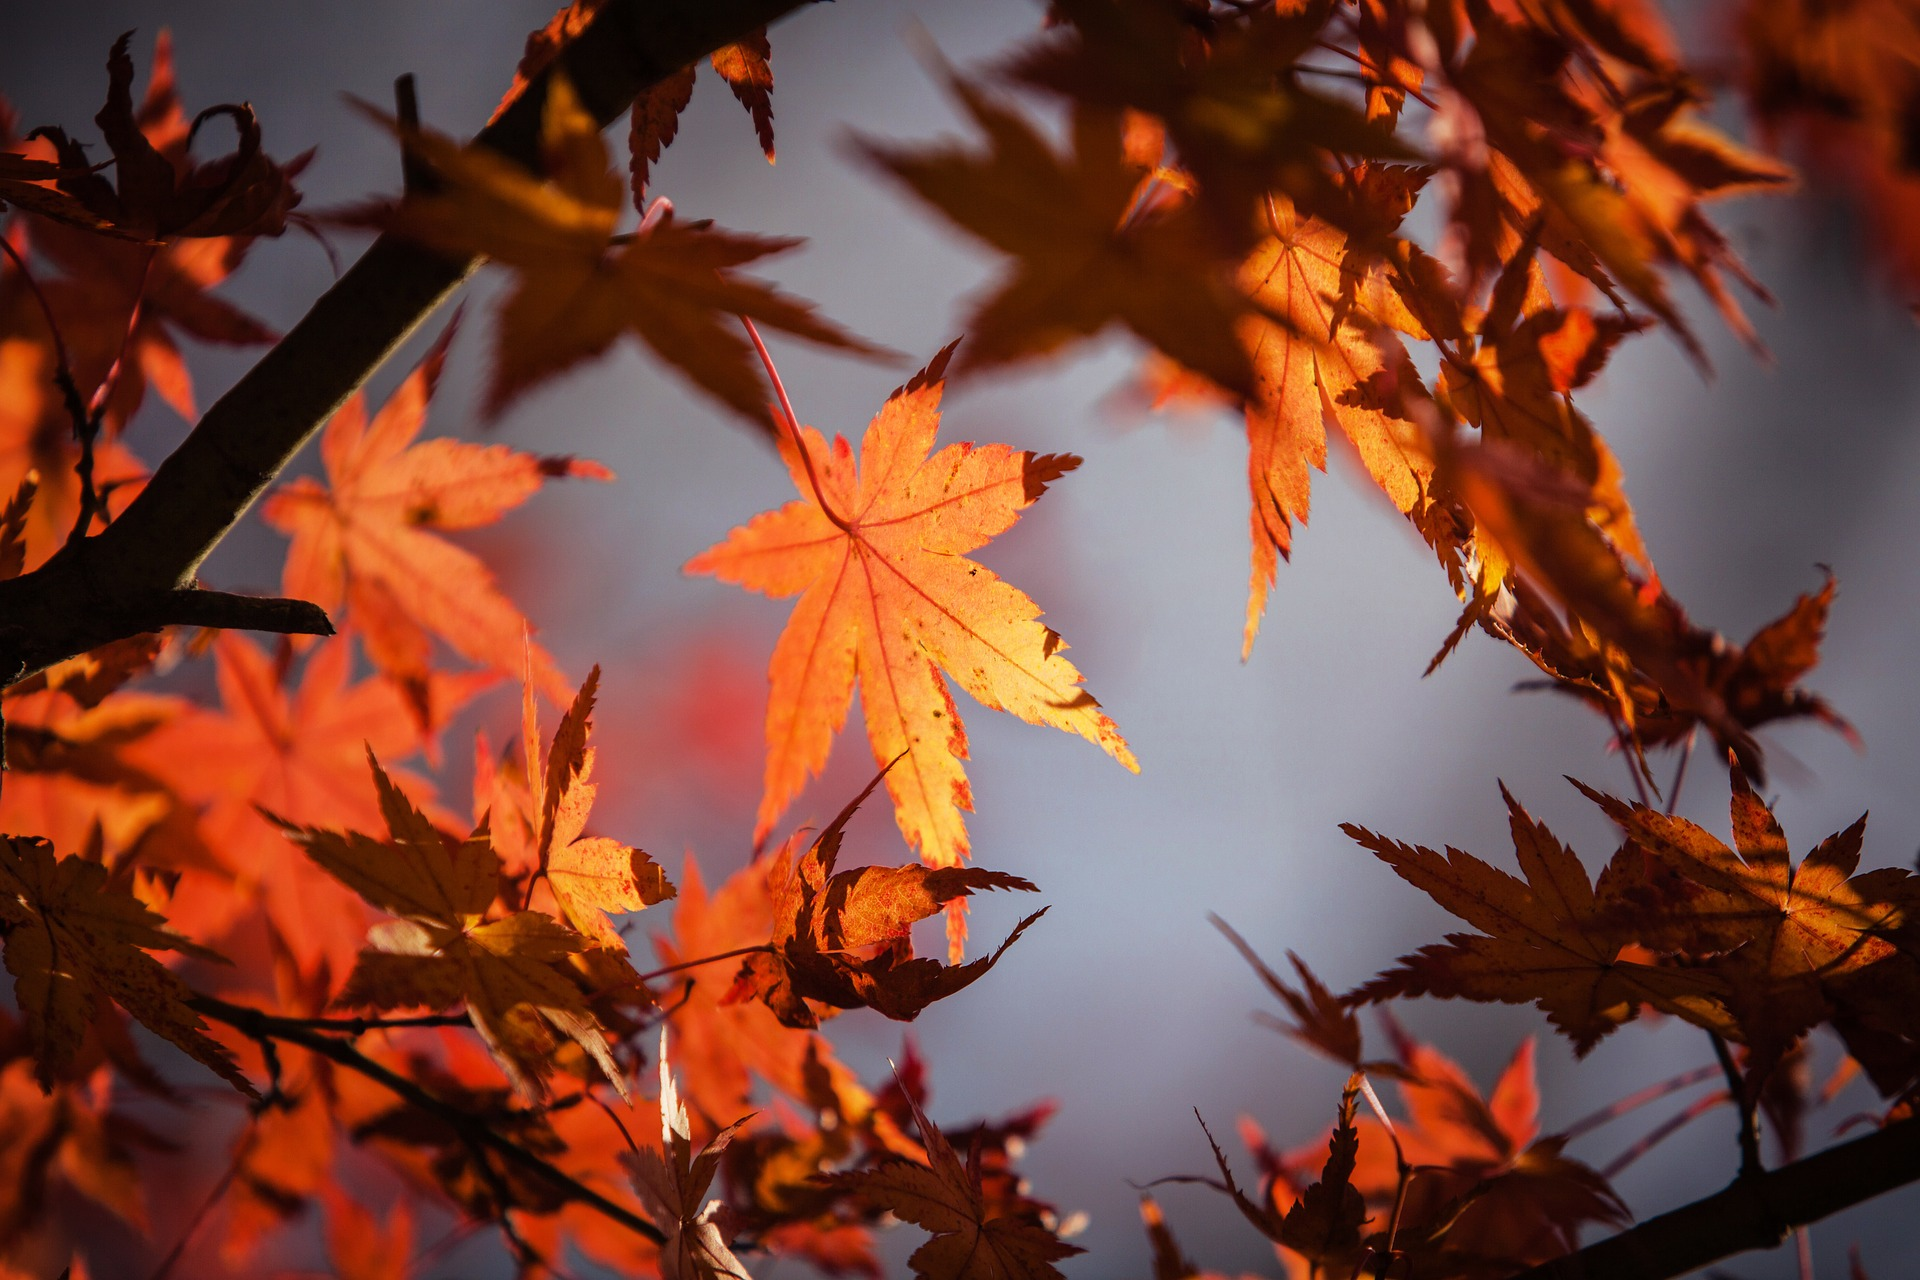 autumn-leaves-1415541_1920.jpg